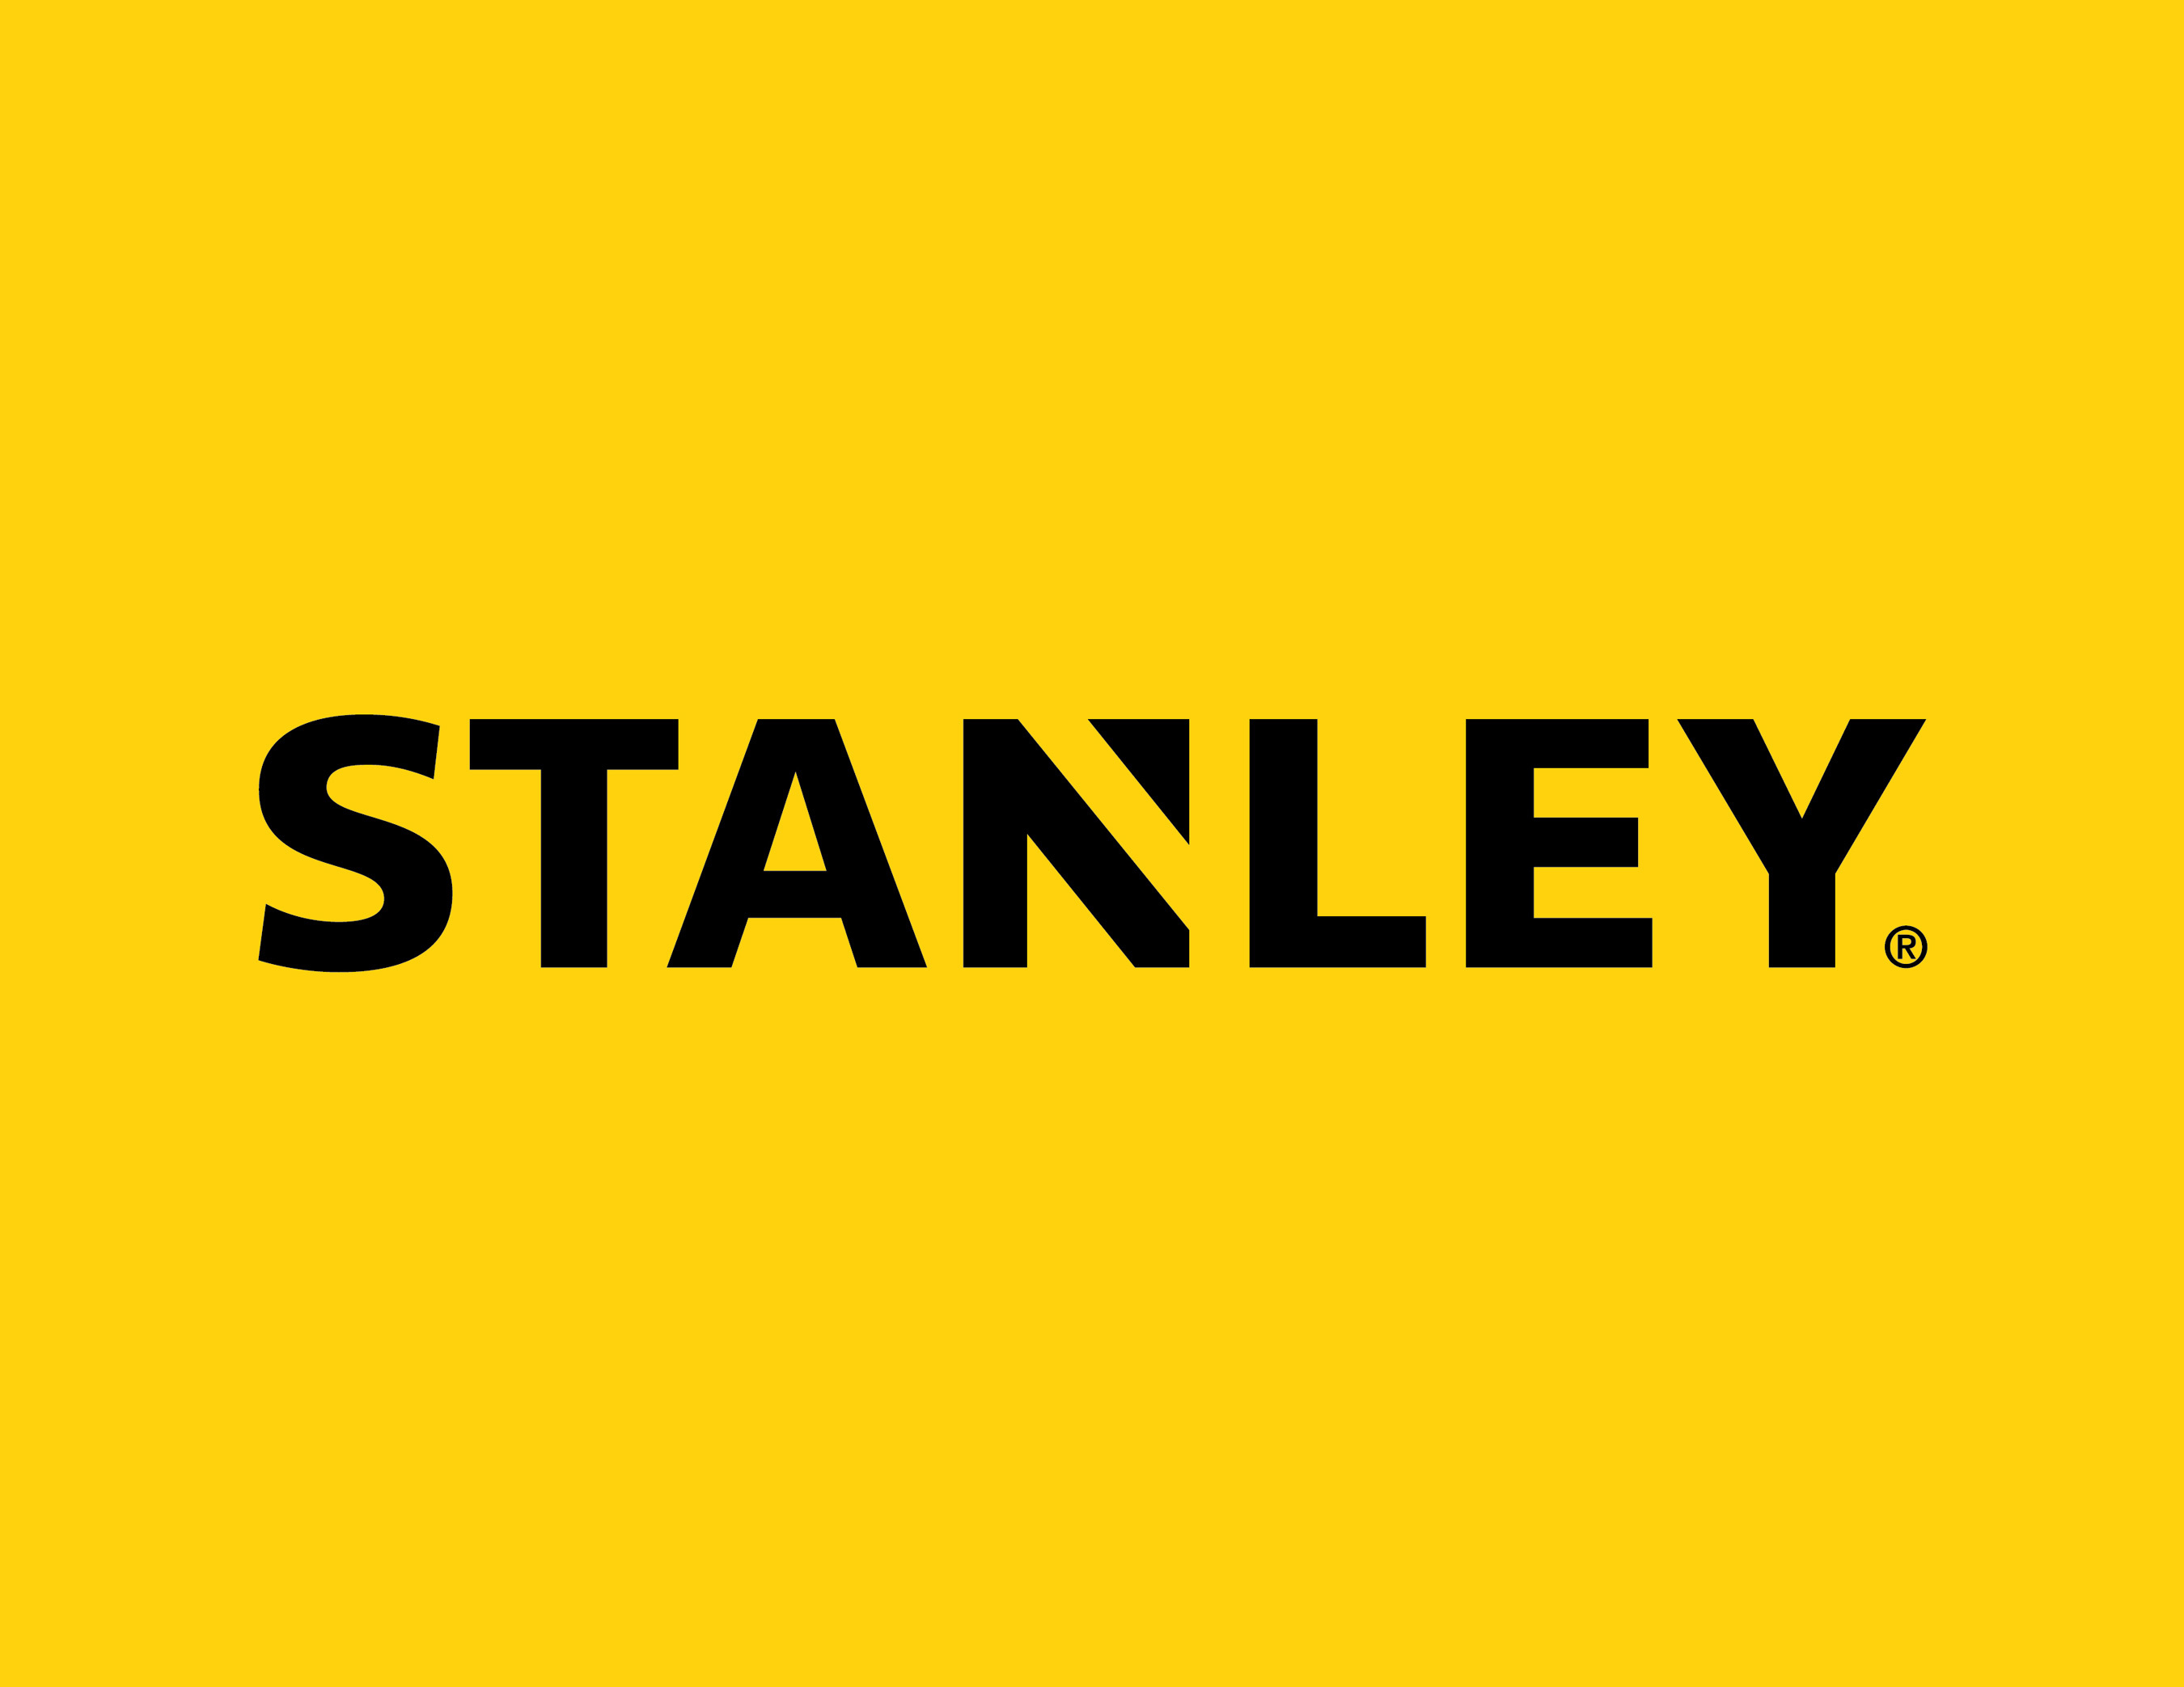 Photo: The Stanley logo, redesigned by Lippincott